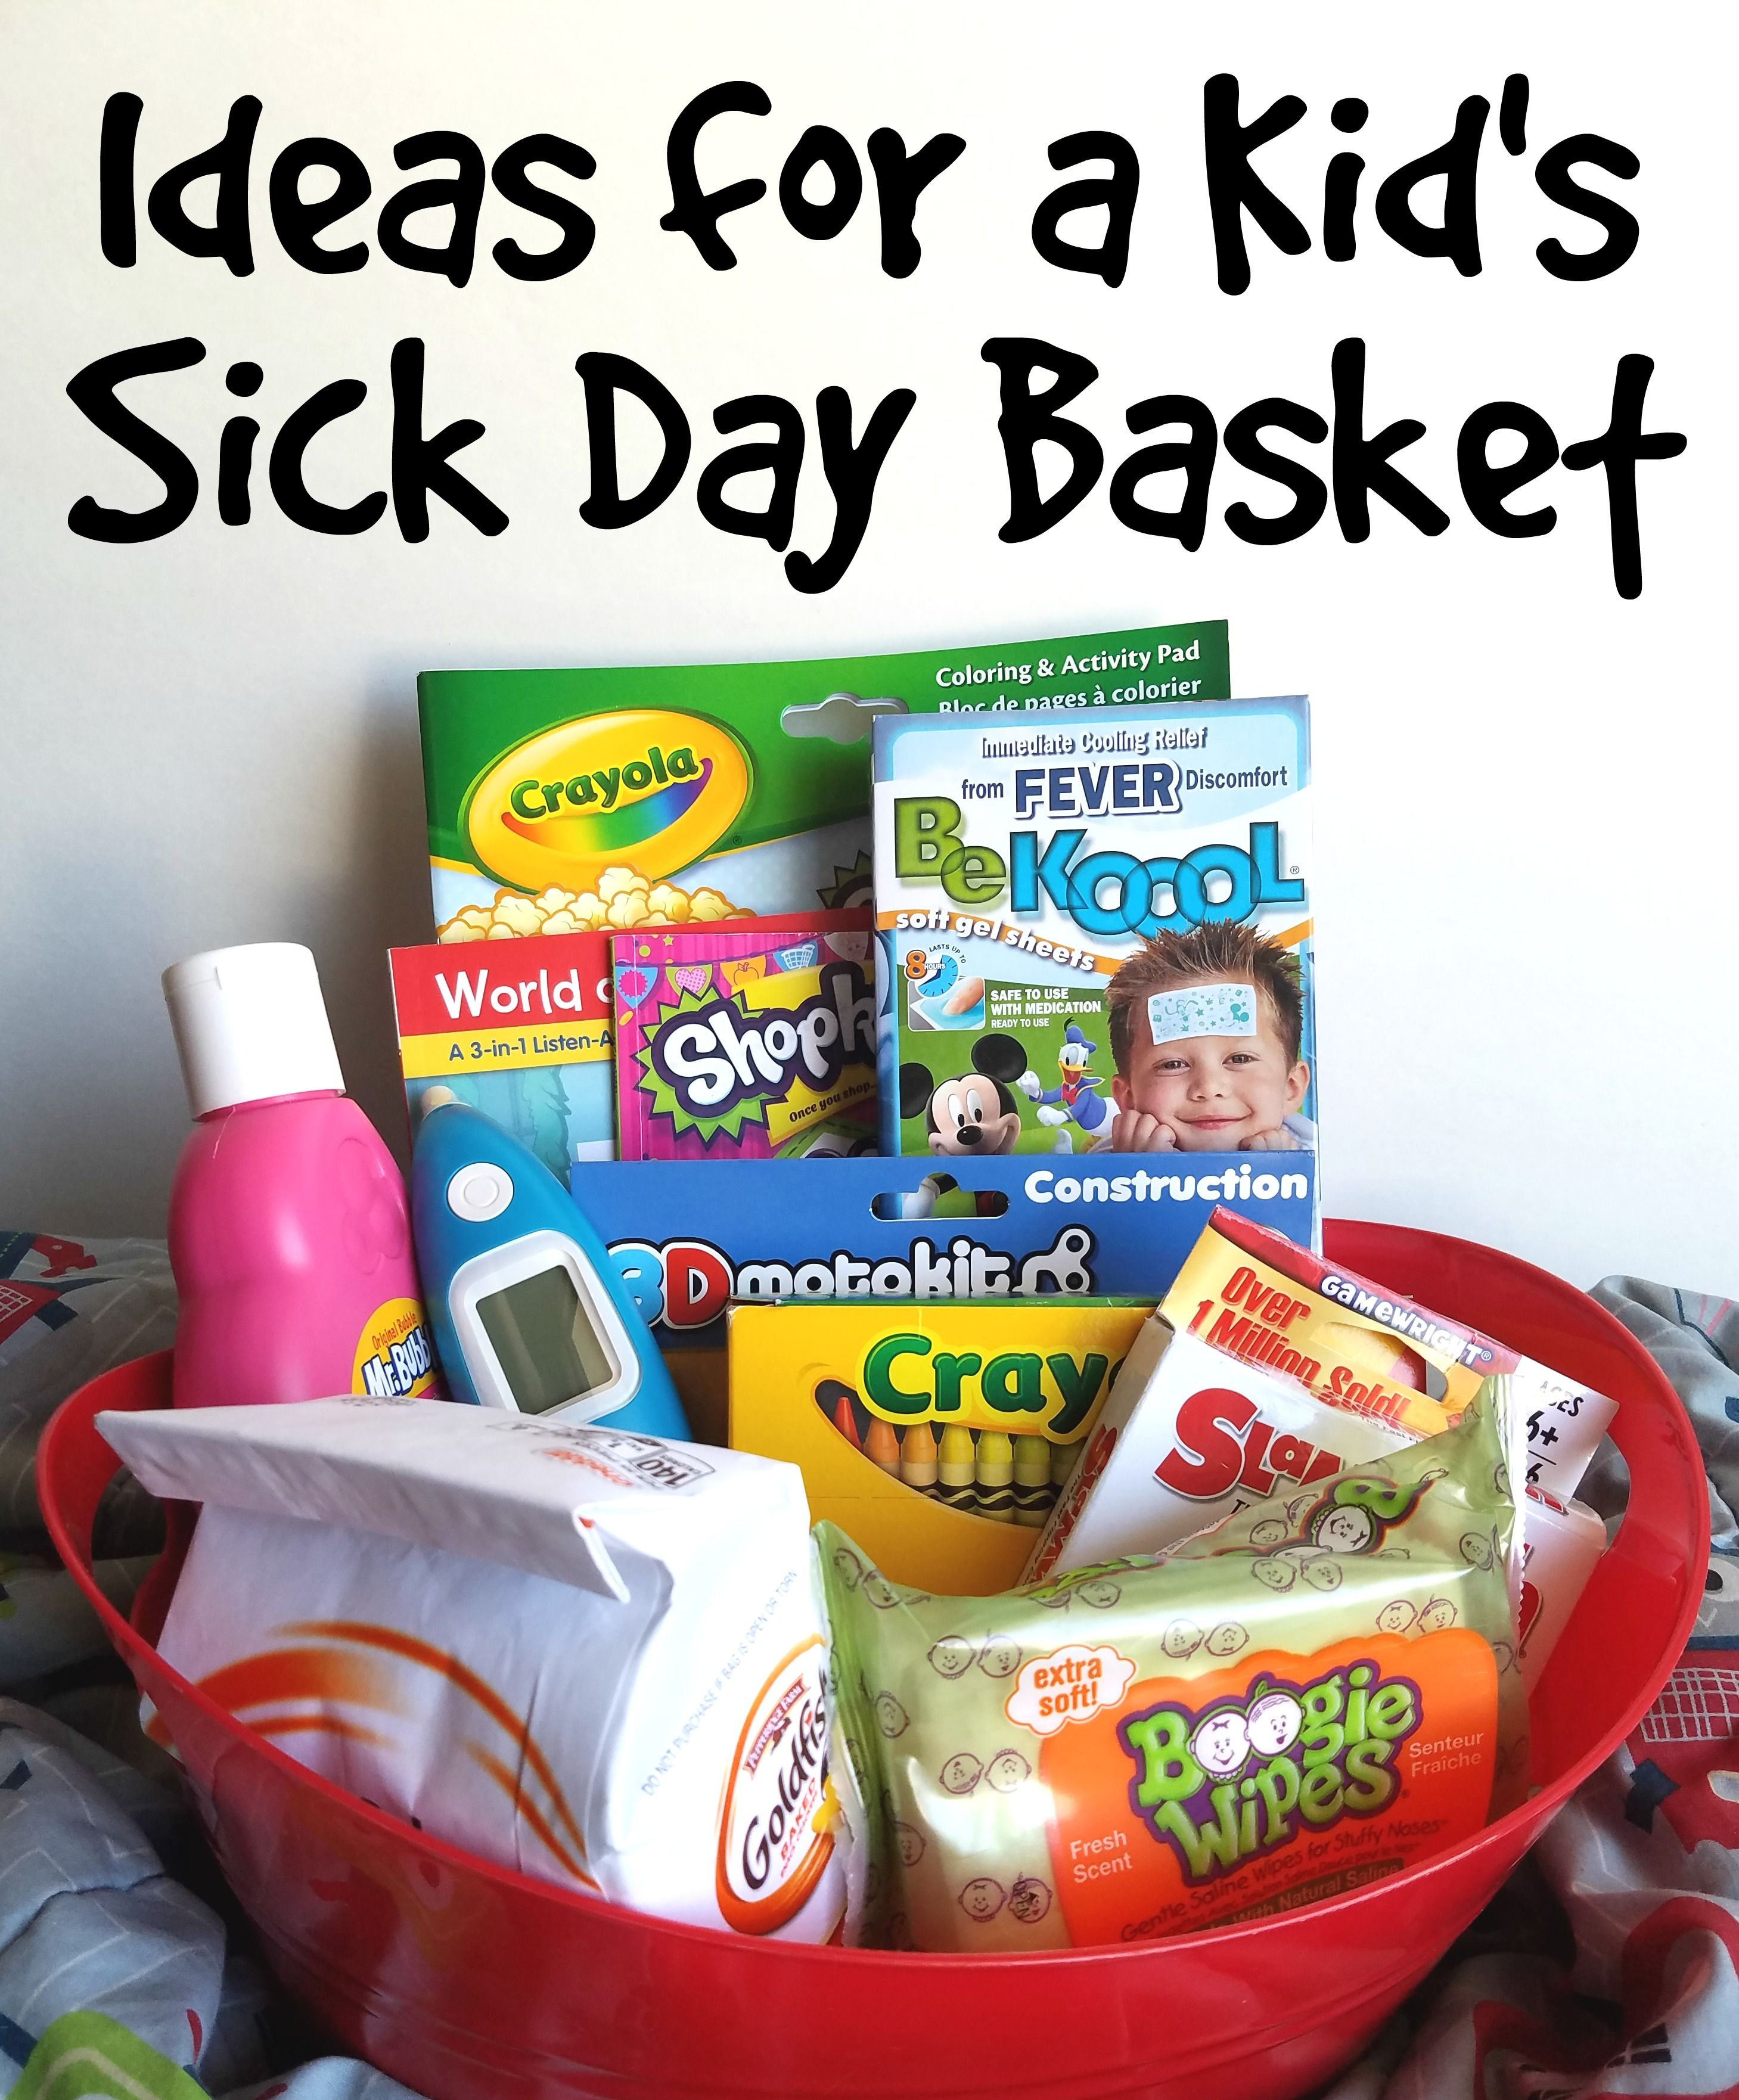 Sick Day Basket For Kids Get Well Gift Baskets Kids Gift Baskets Kids Care Package